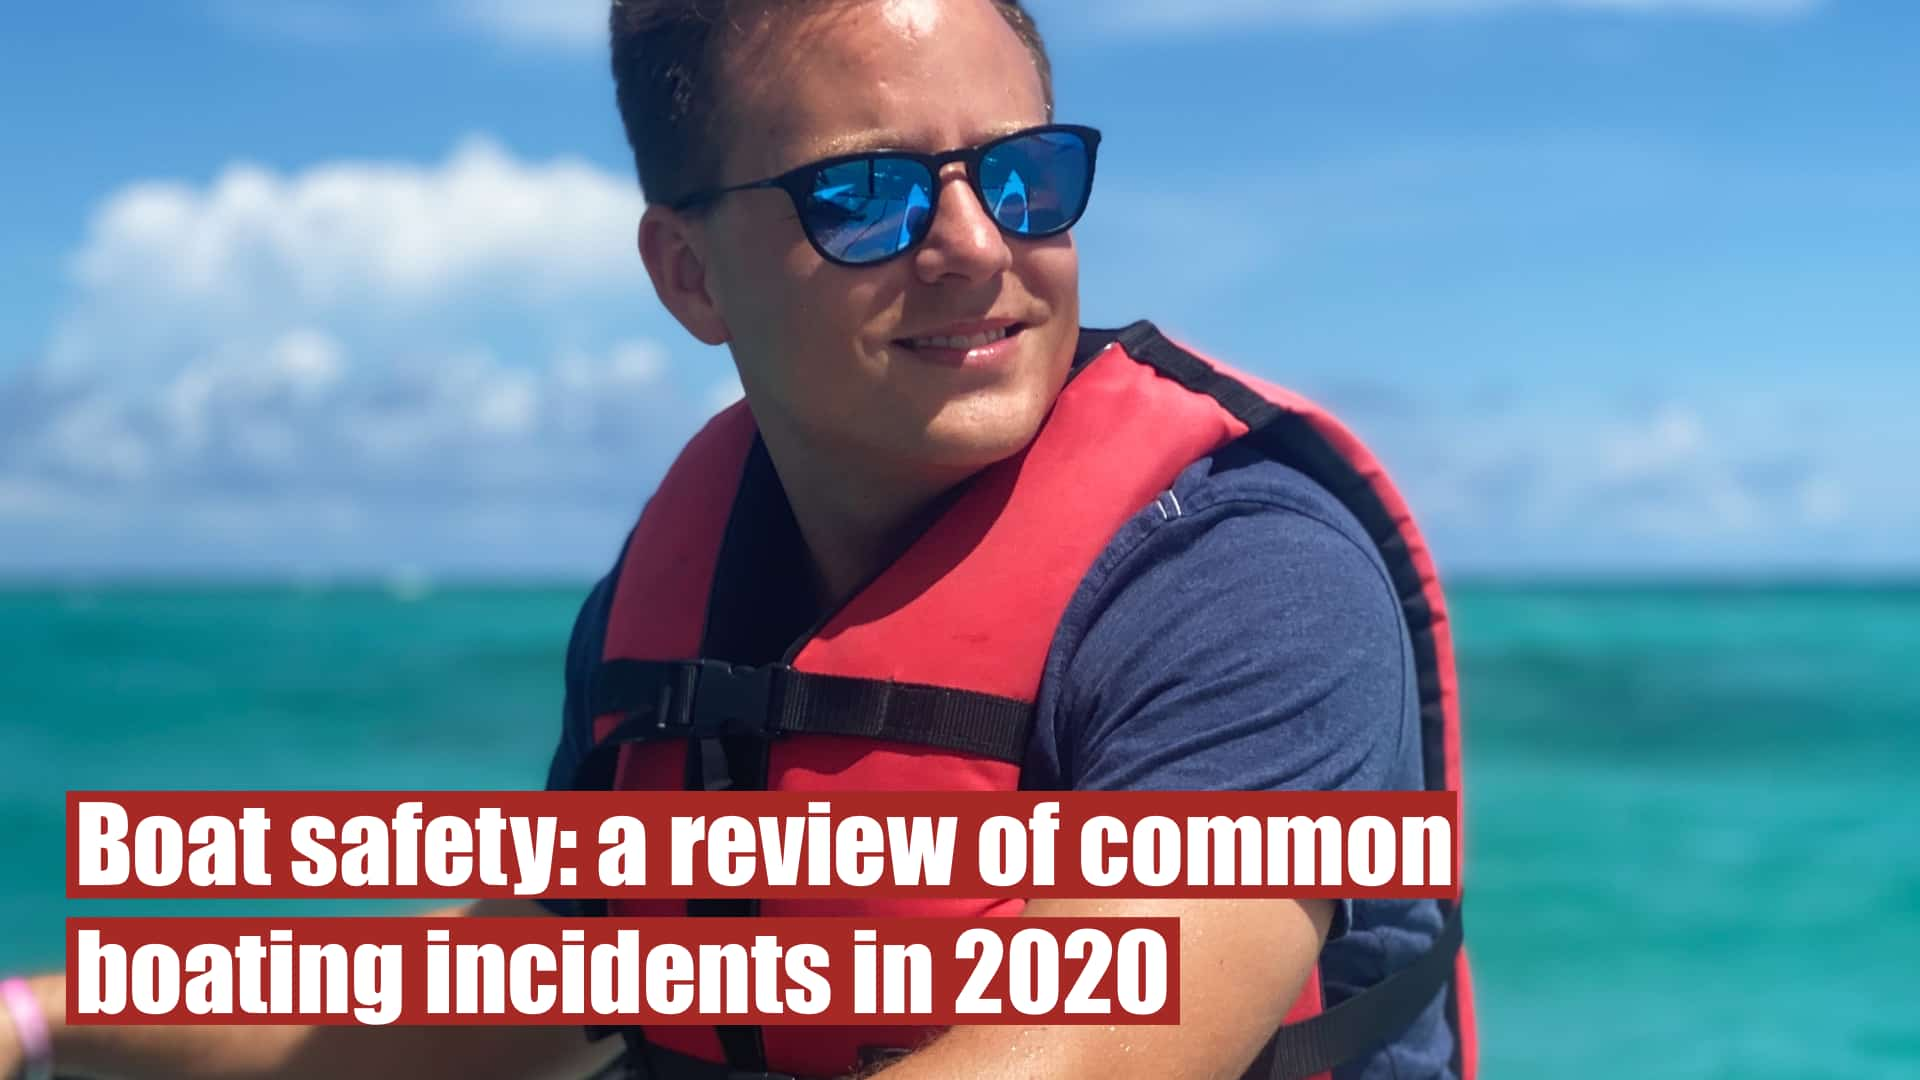 Boat safety: a review of common boating incidents in 2020